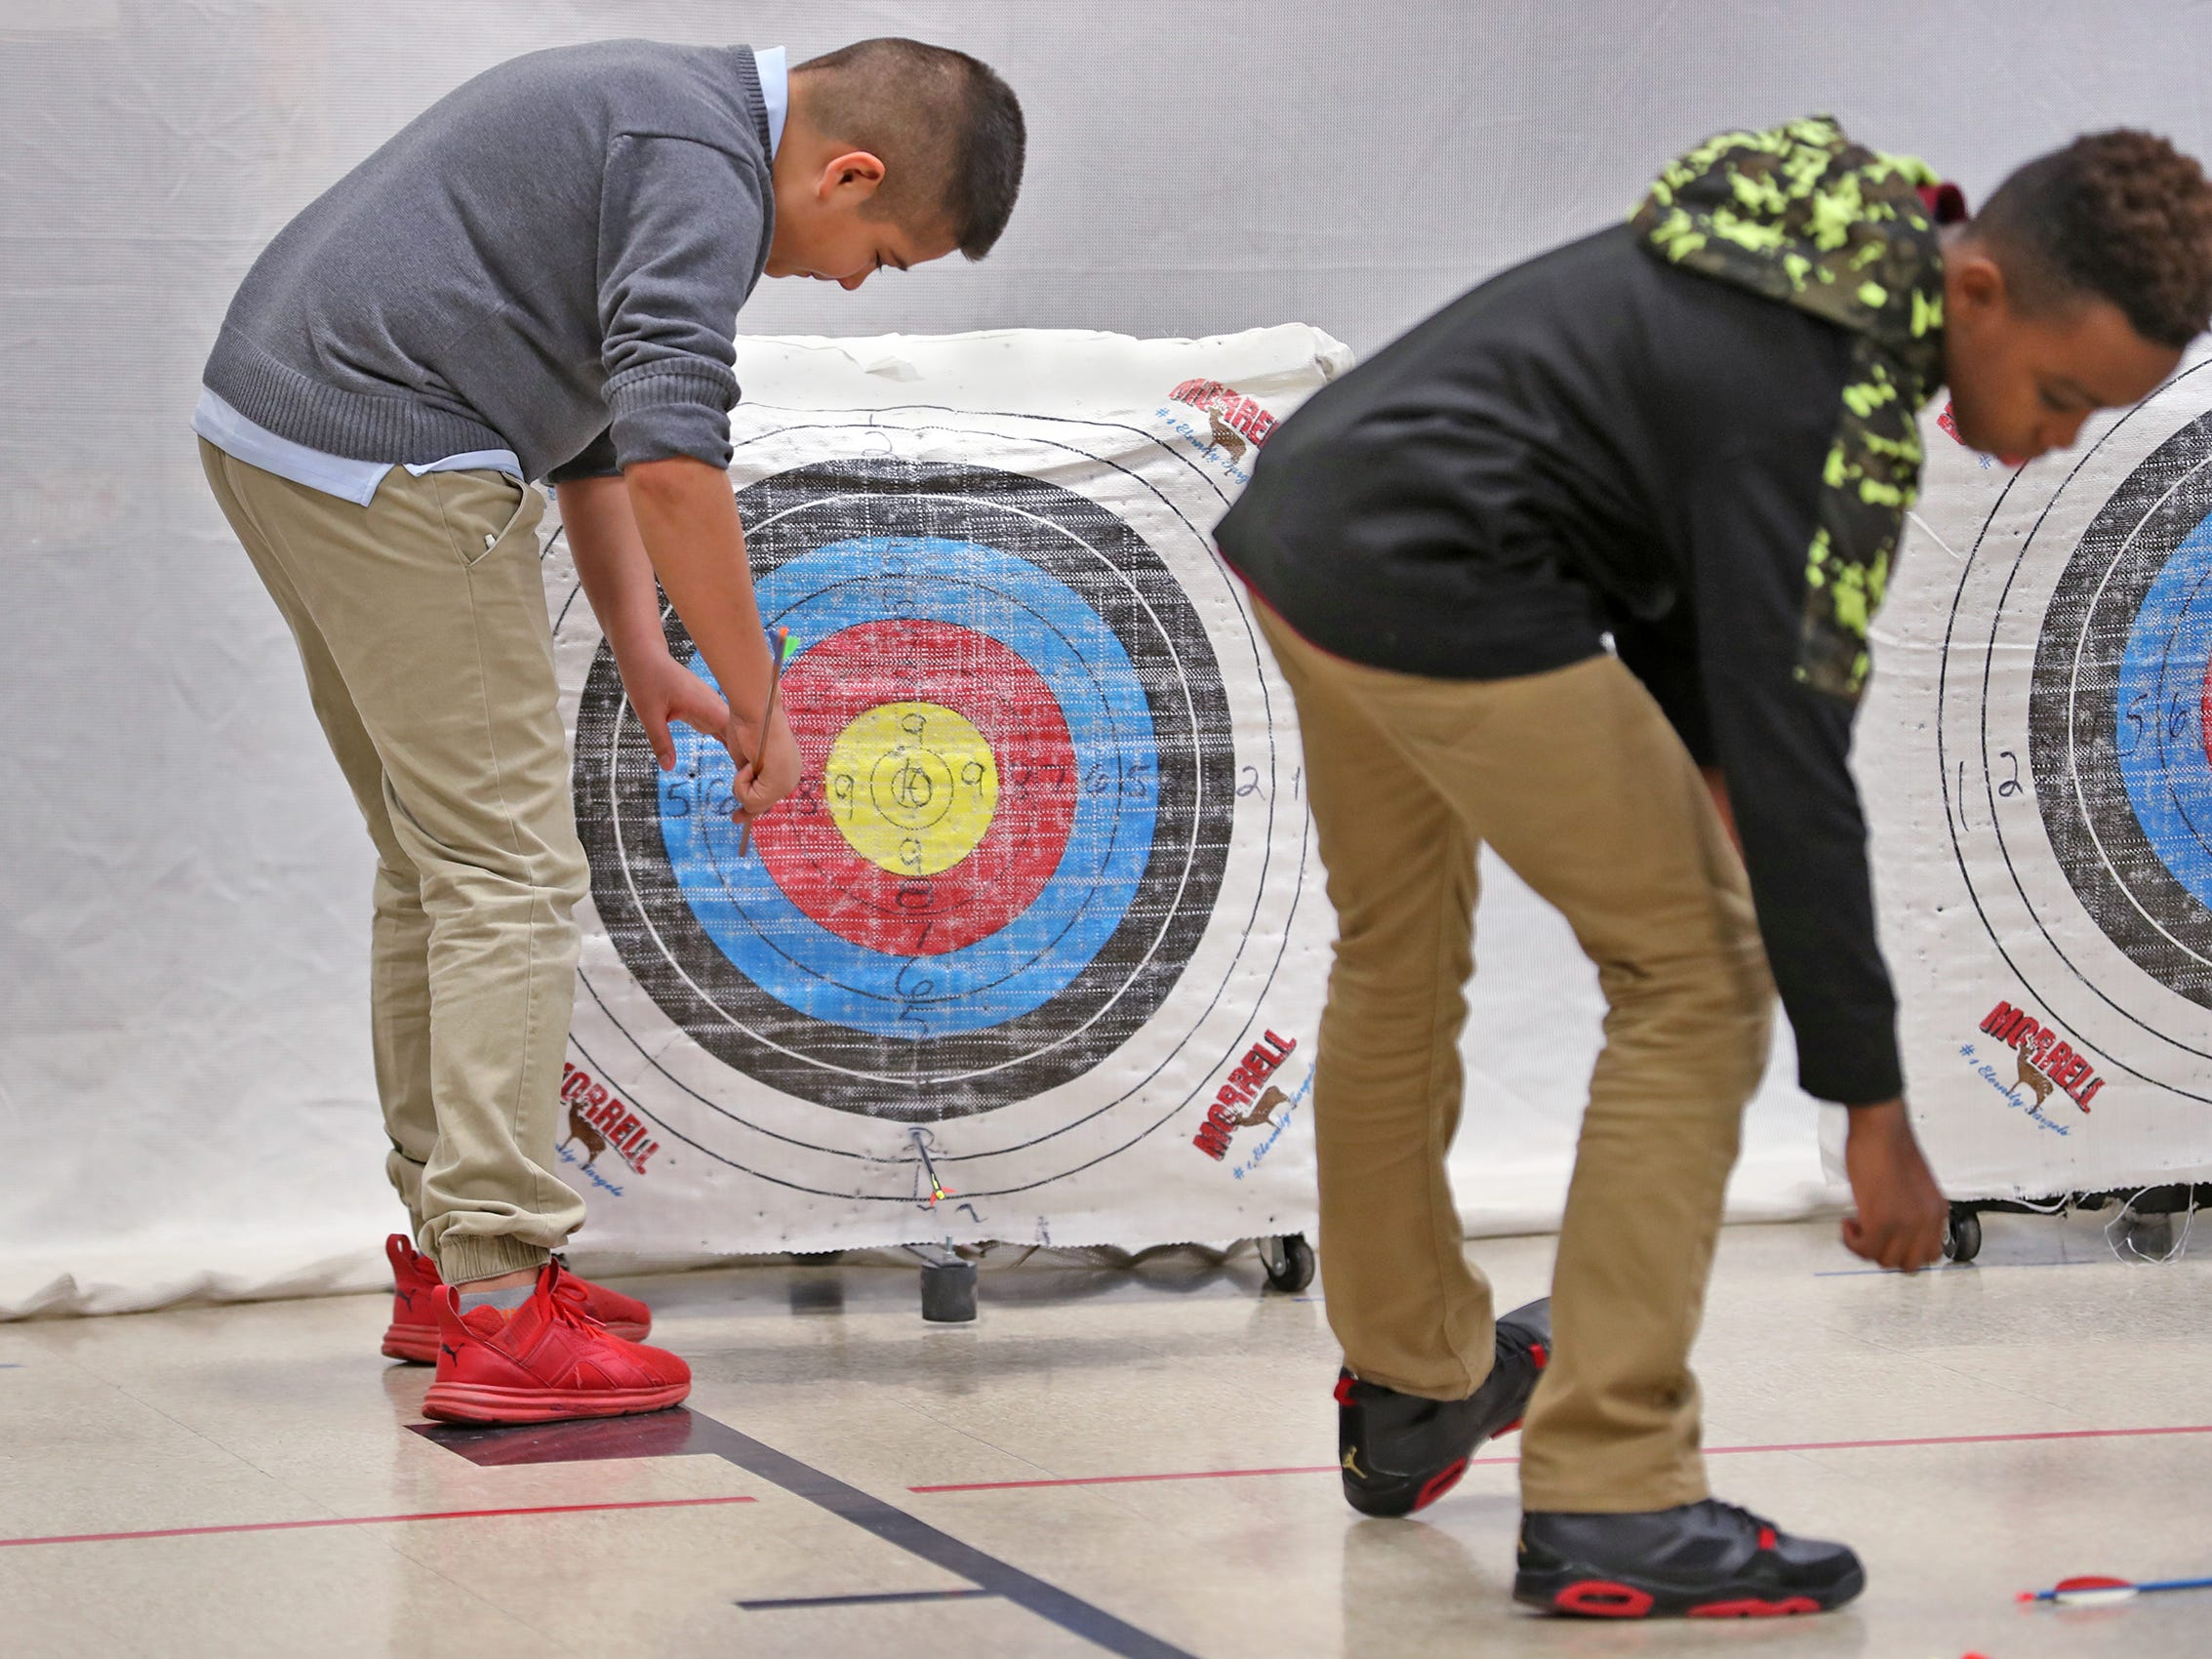 Francisco Barraza, left, and Aadian Richmond retrieve their arrows during archery class at Lew Wallace Elementary IPS 107, Thursday, Dec. 20, 2018.